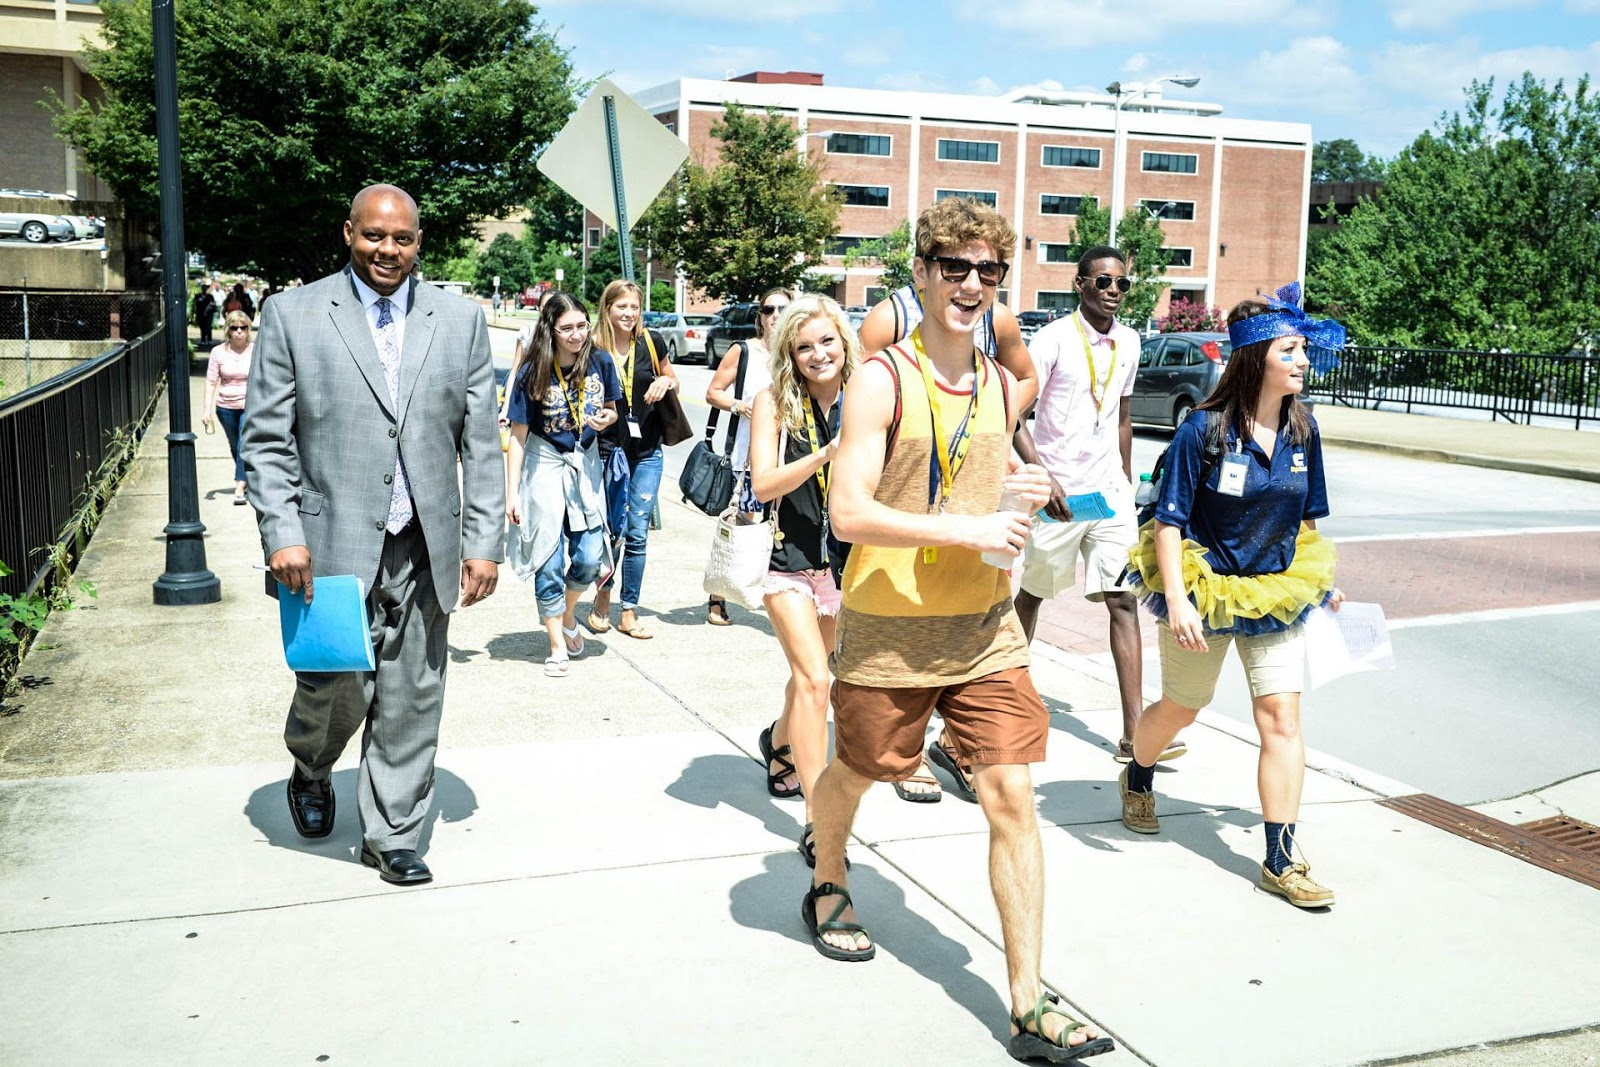 54aac-freshman-orientation-walk.jpg